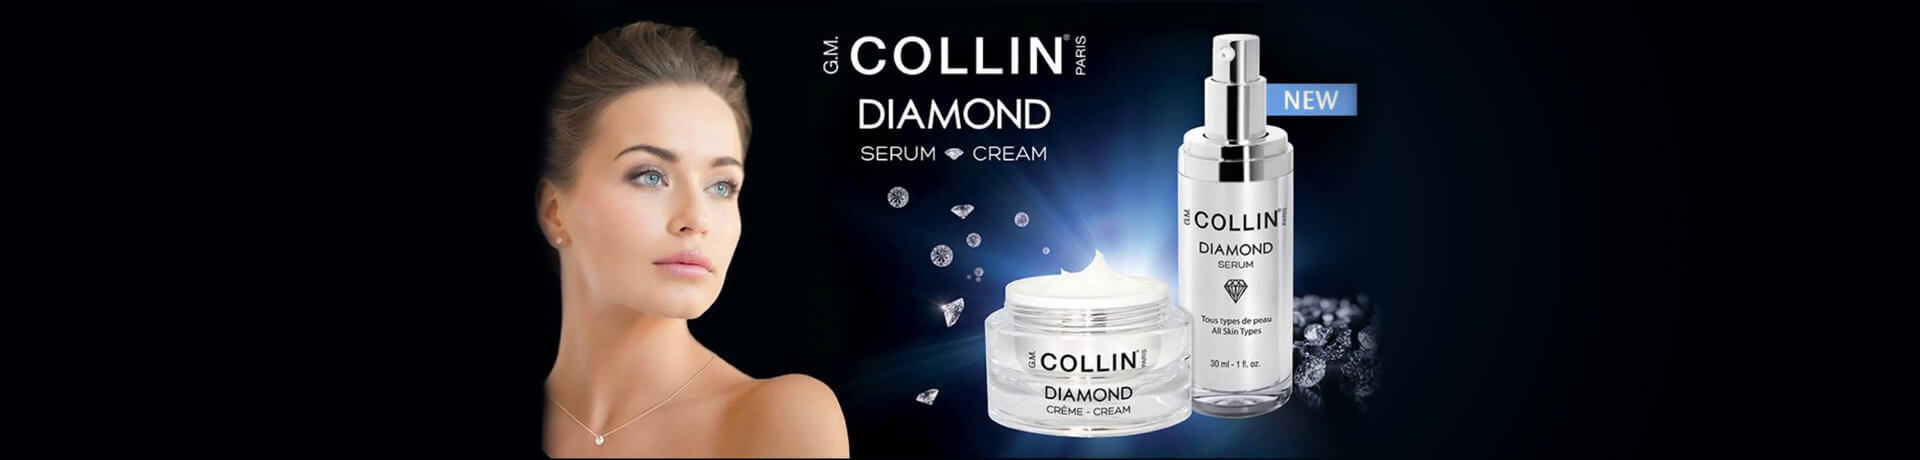 Colloin Diamond Serum Cream slide